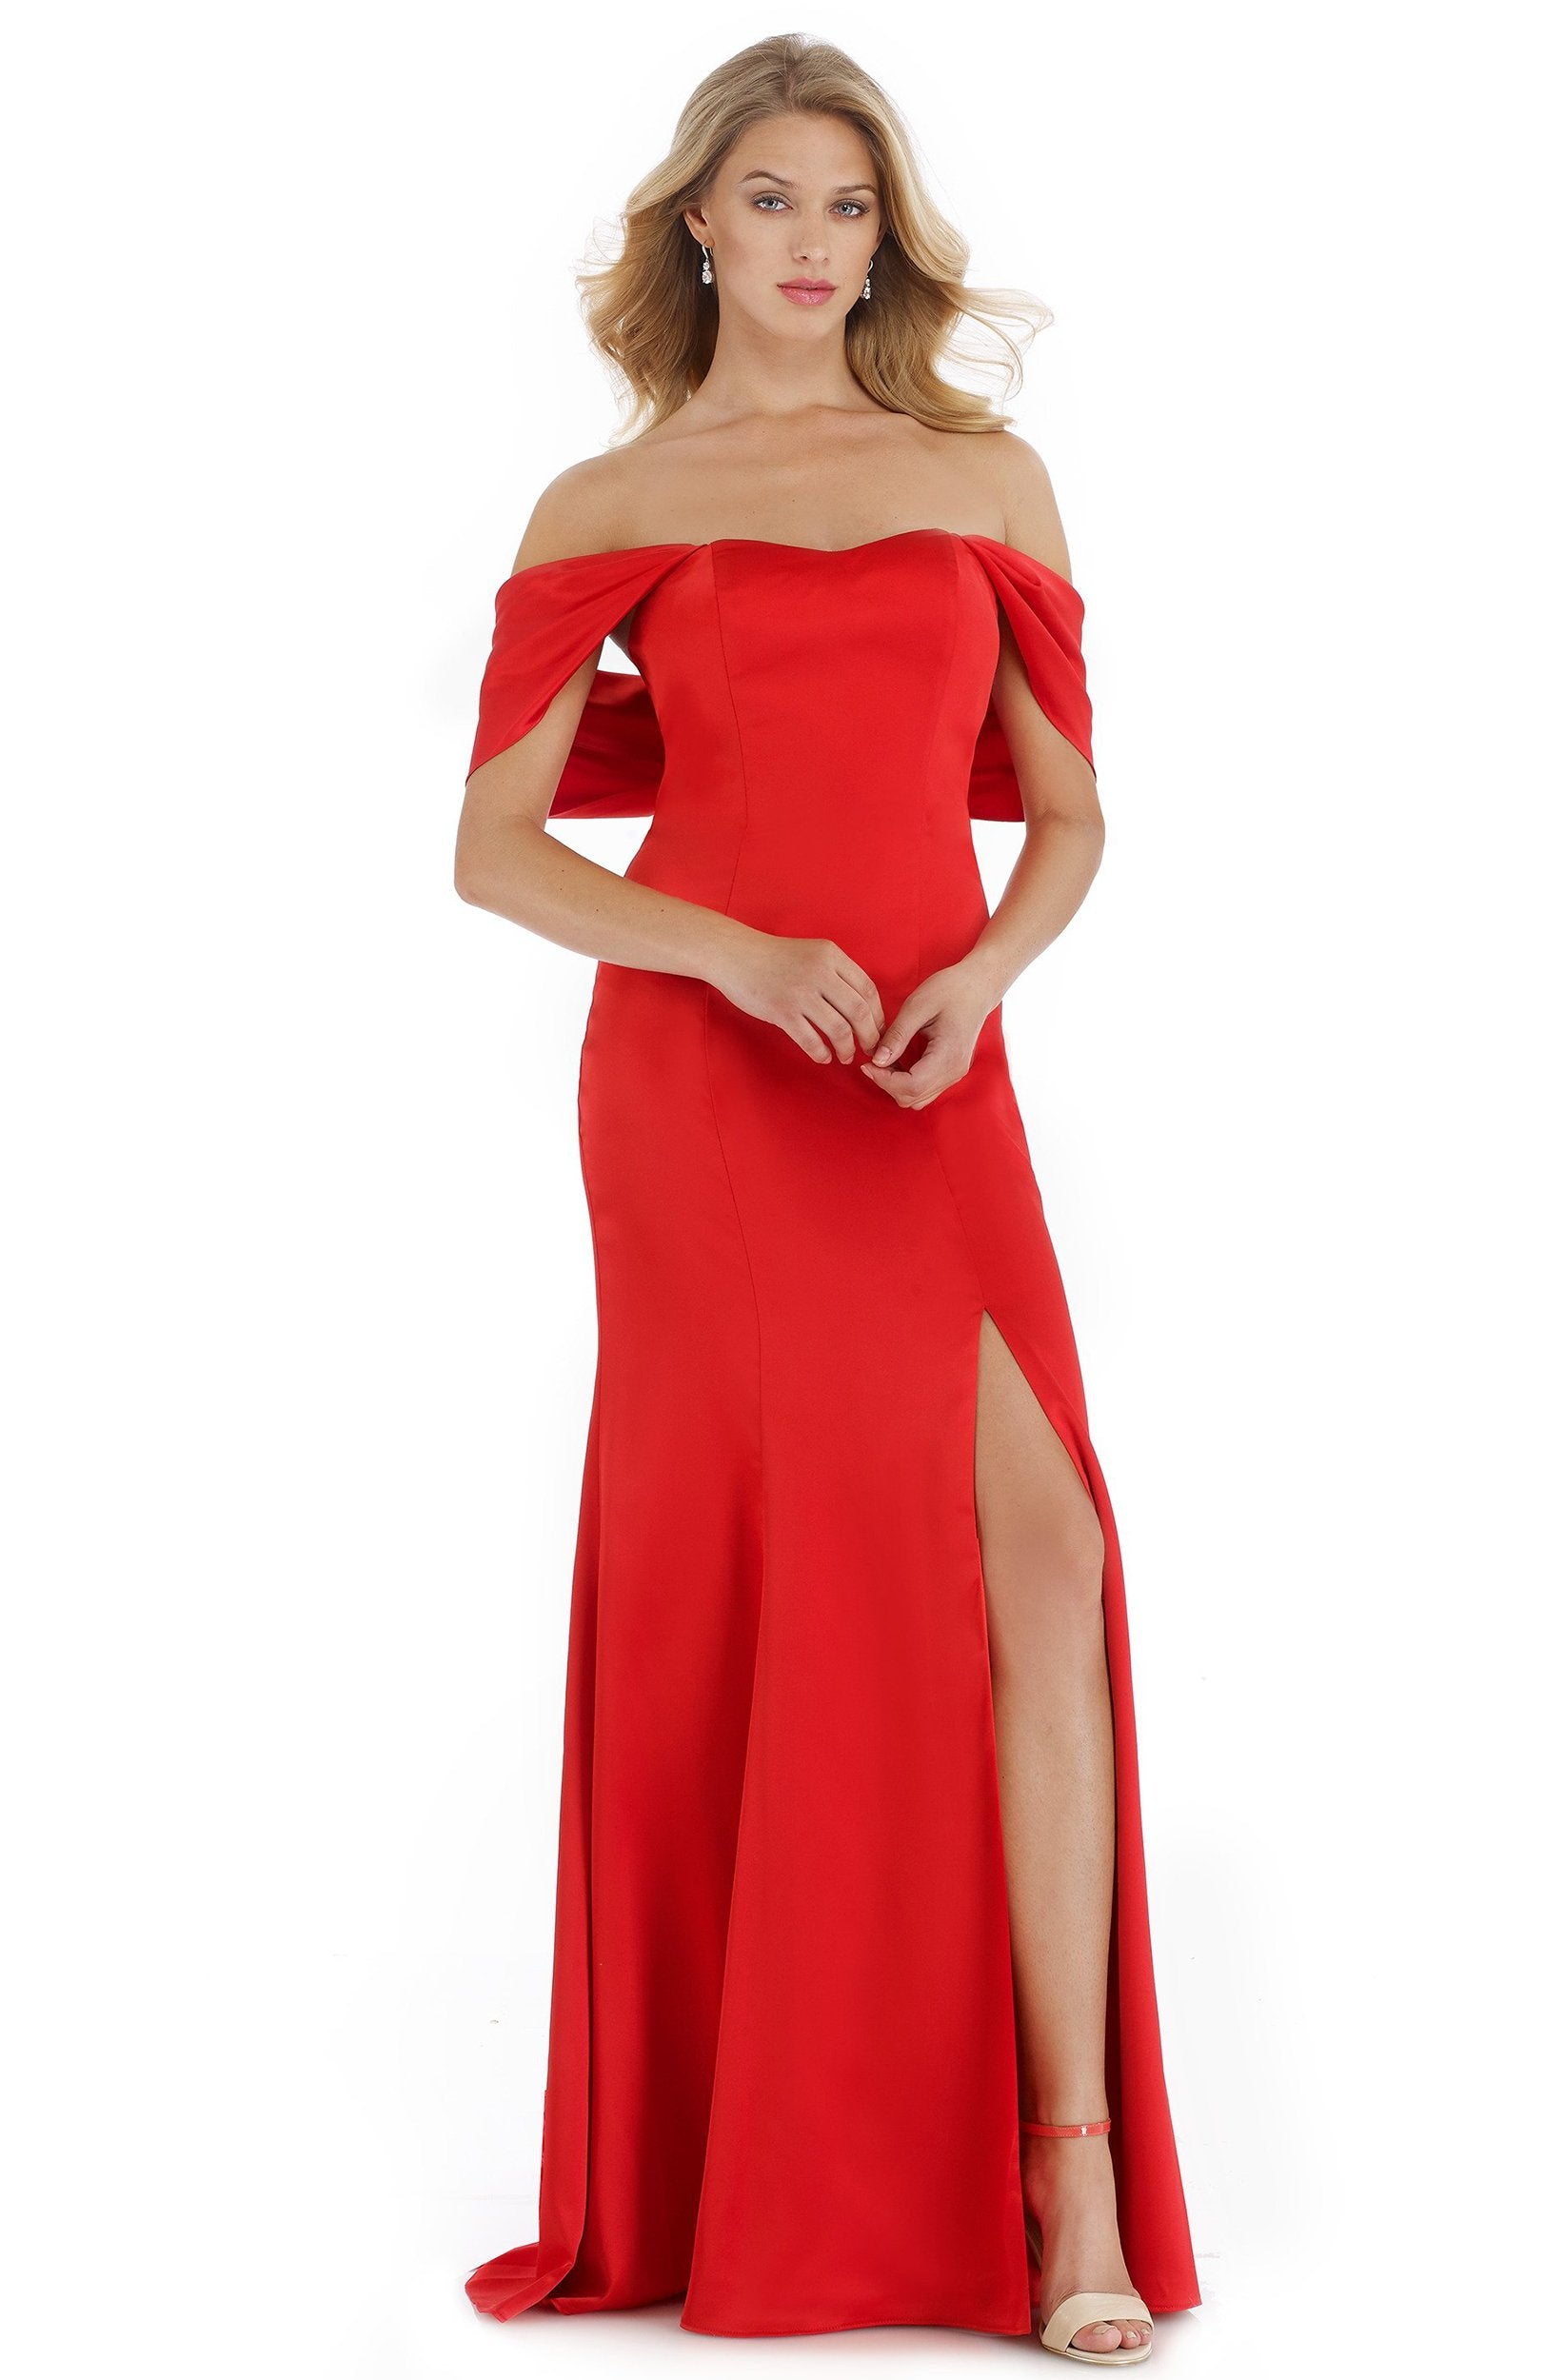 Morrell Maxie - 16014 Off-Shoulder Satin Charmeuse Trumpet Dress in Red